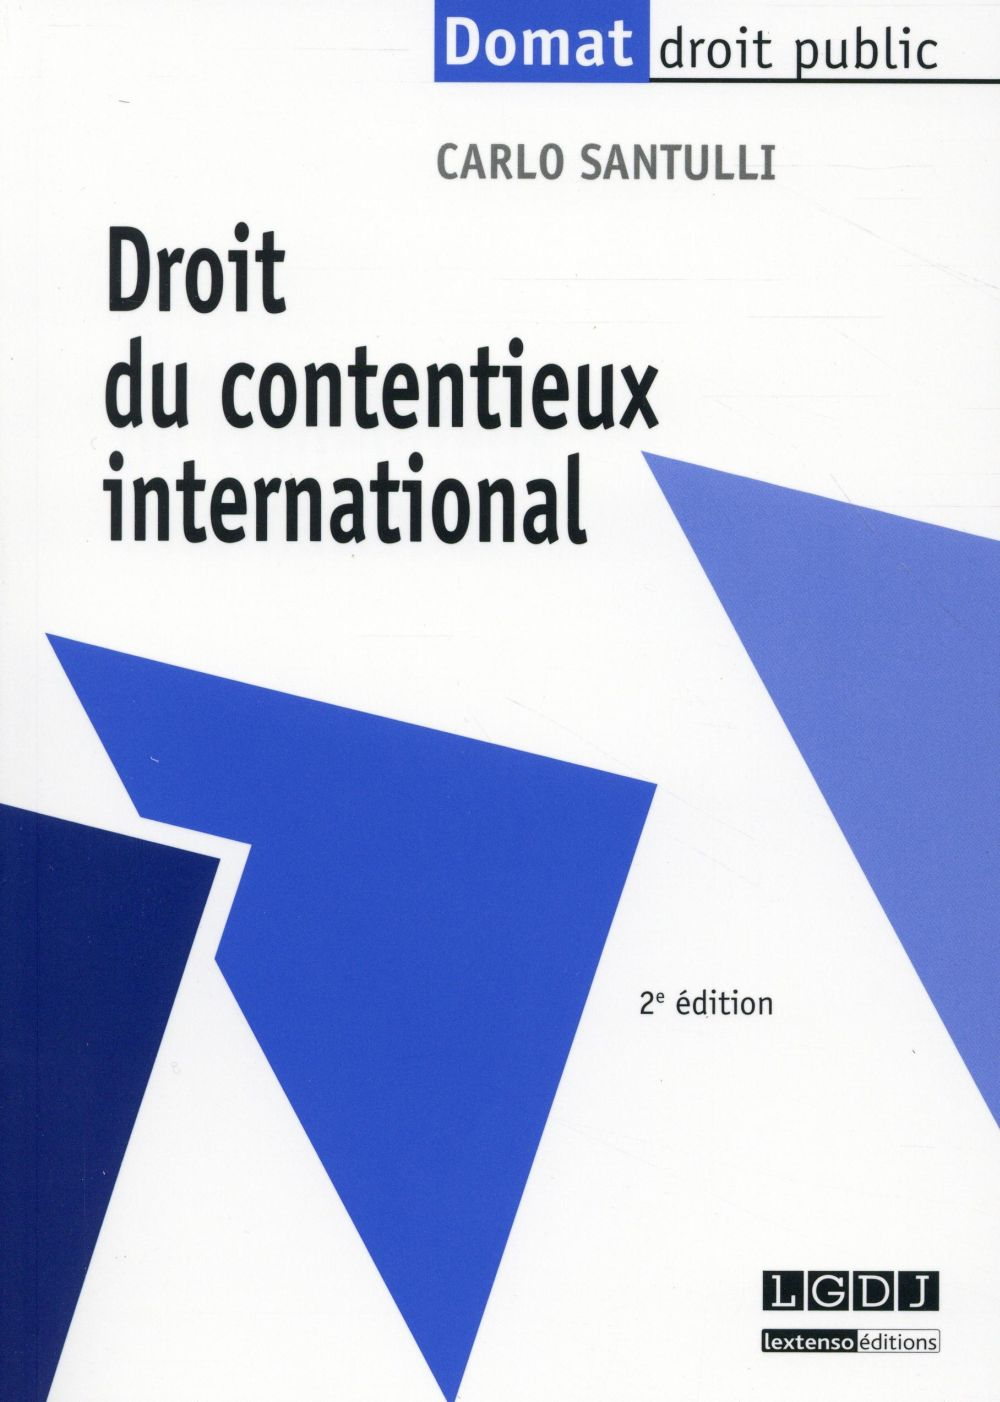 Droit du contentieux international (2e édition)